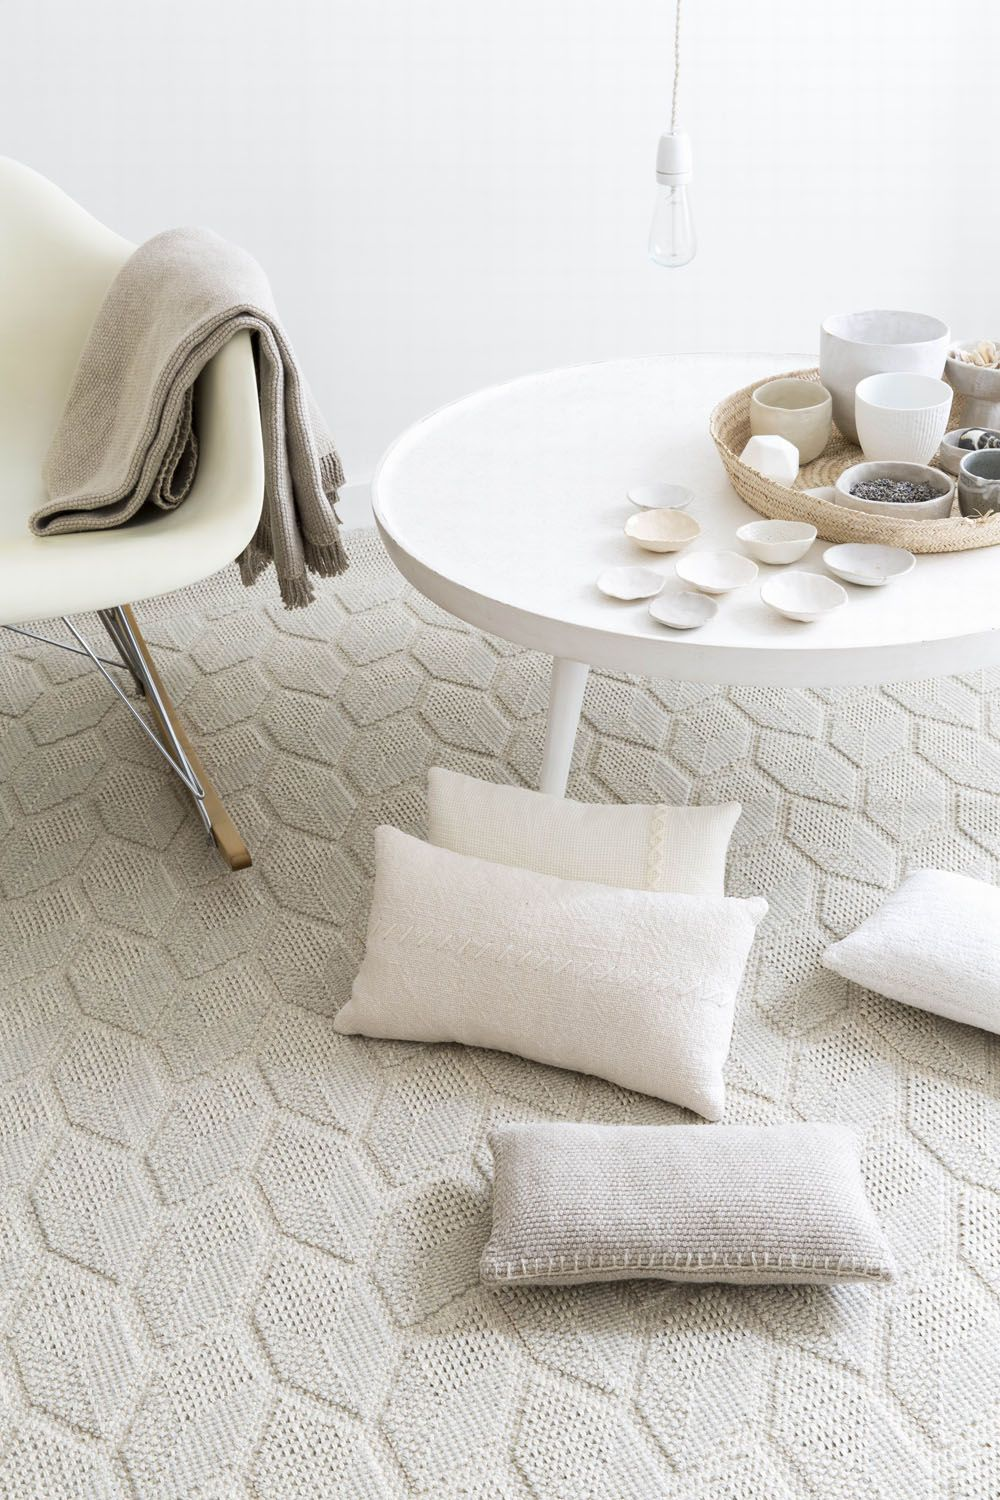 7 Scandi-chic Fabrics And Wall Coverings For That Nordic Look